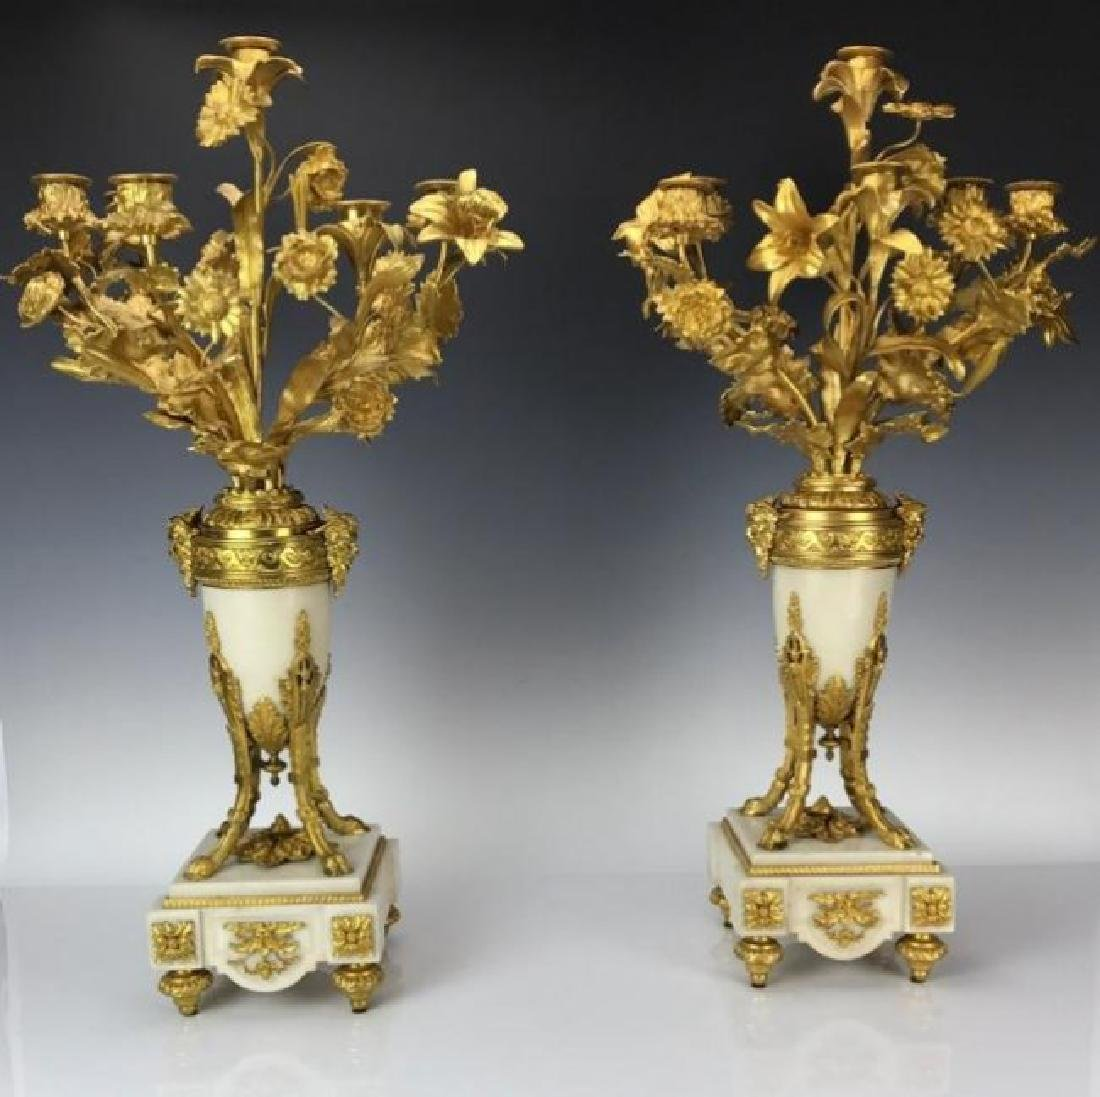 LARGE PAIR OF ORMOLU AND MARBLE CANDELABRA